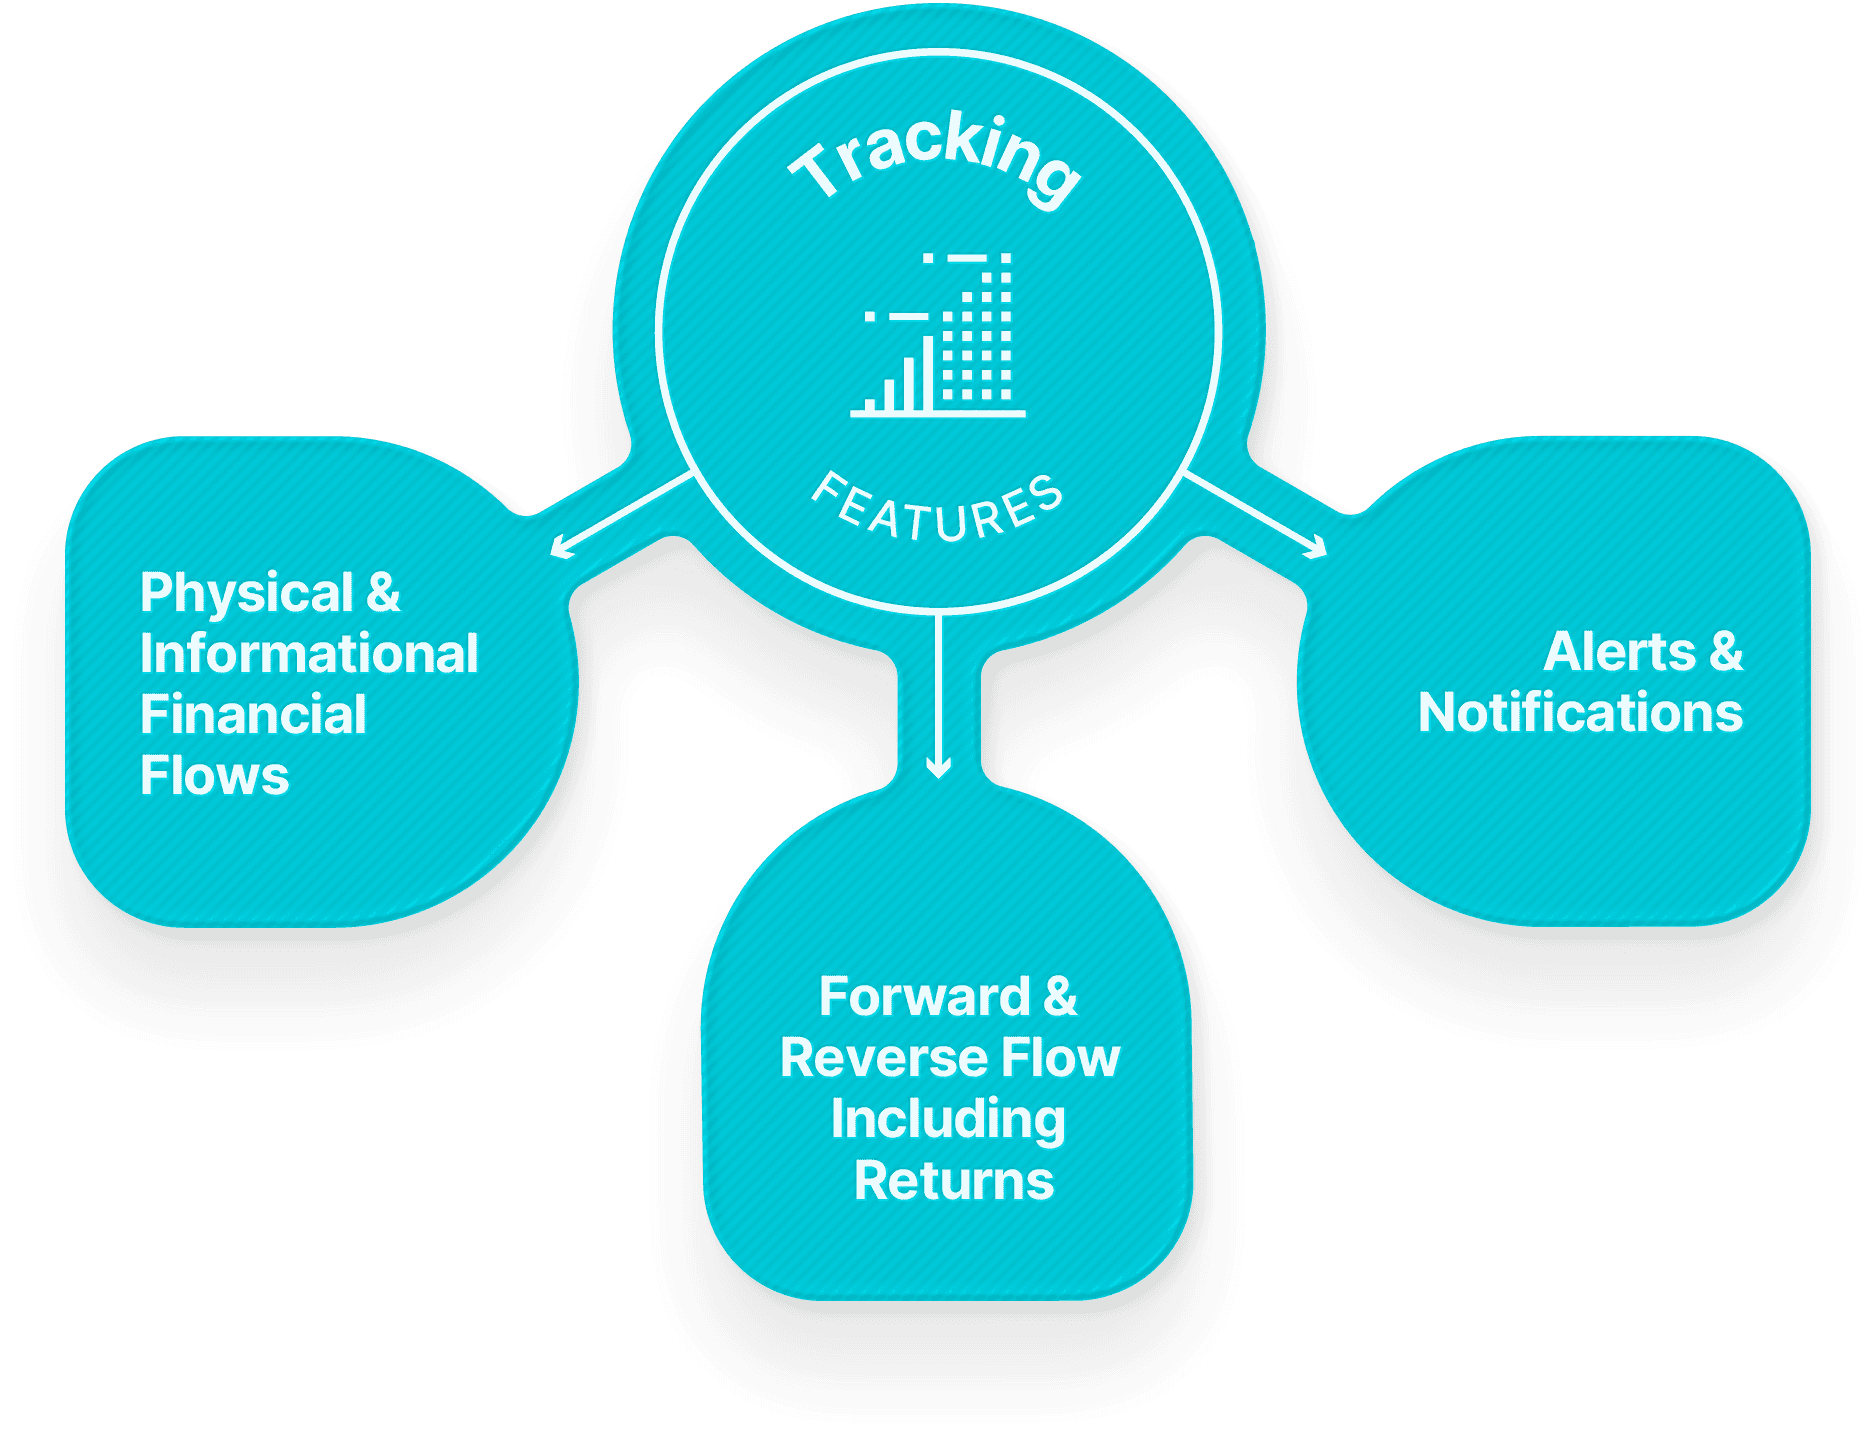 Tracking Features